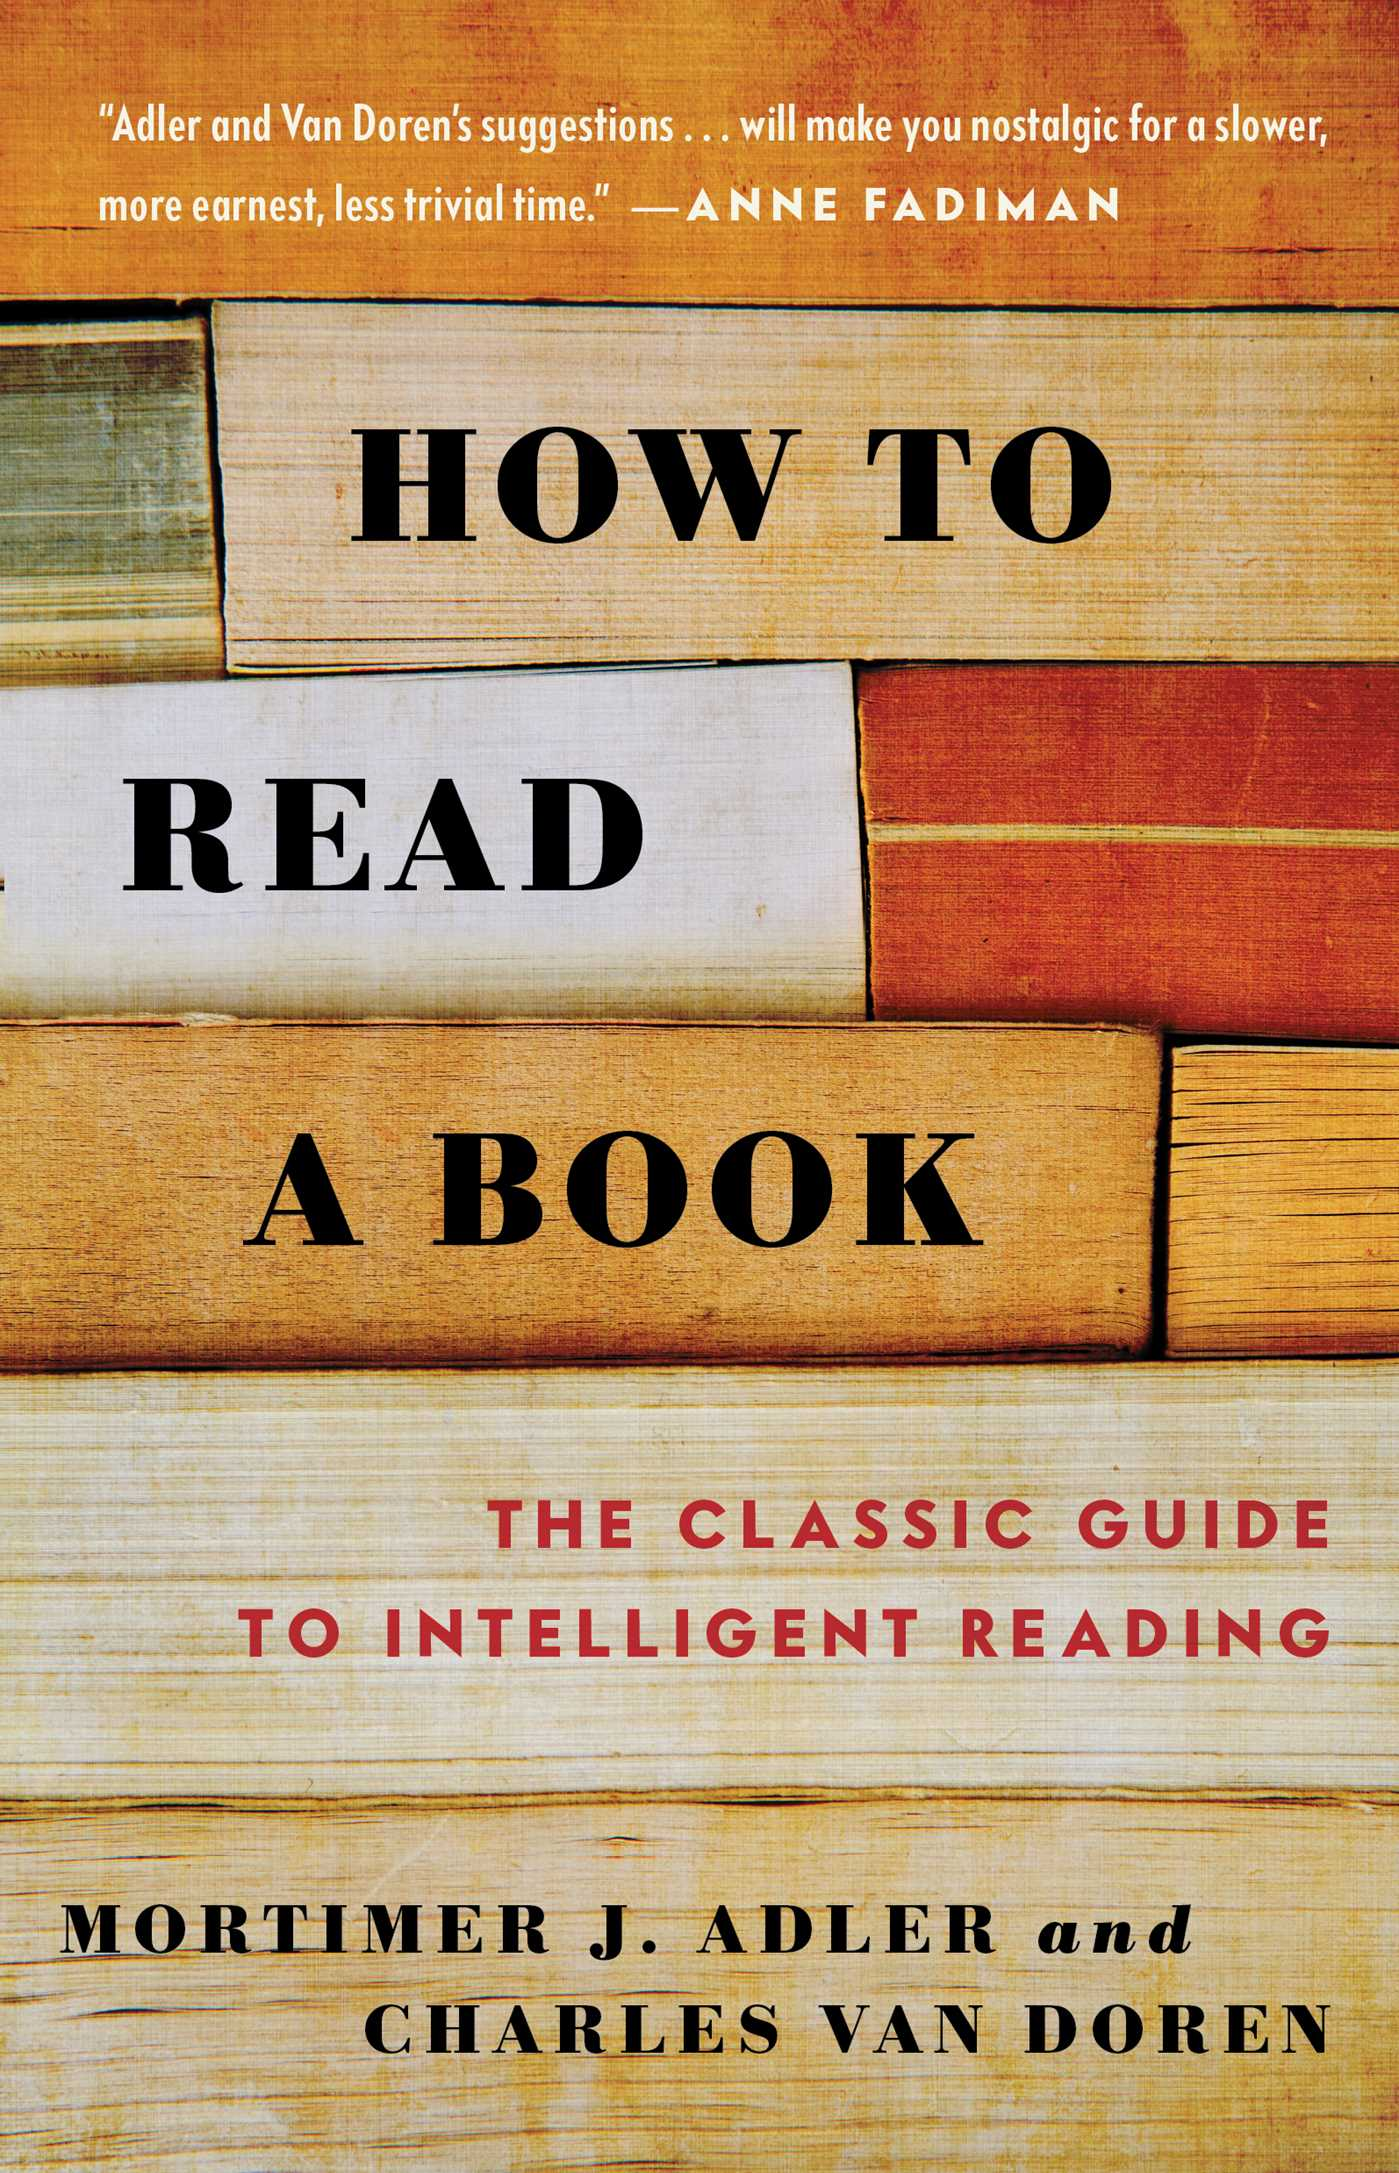 How-to-read-a-book-9780671212094_hr